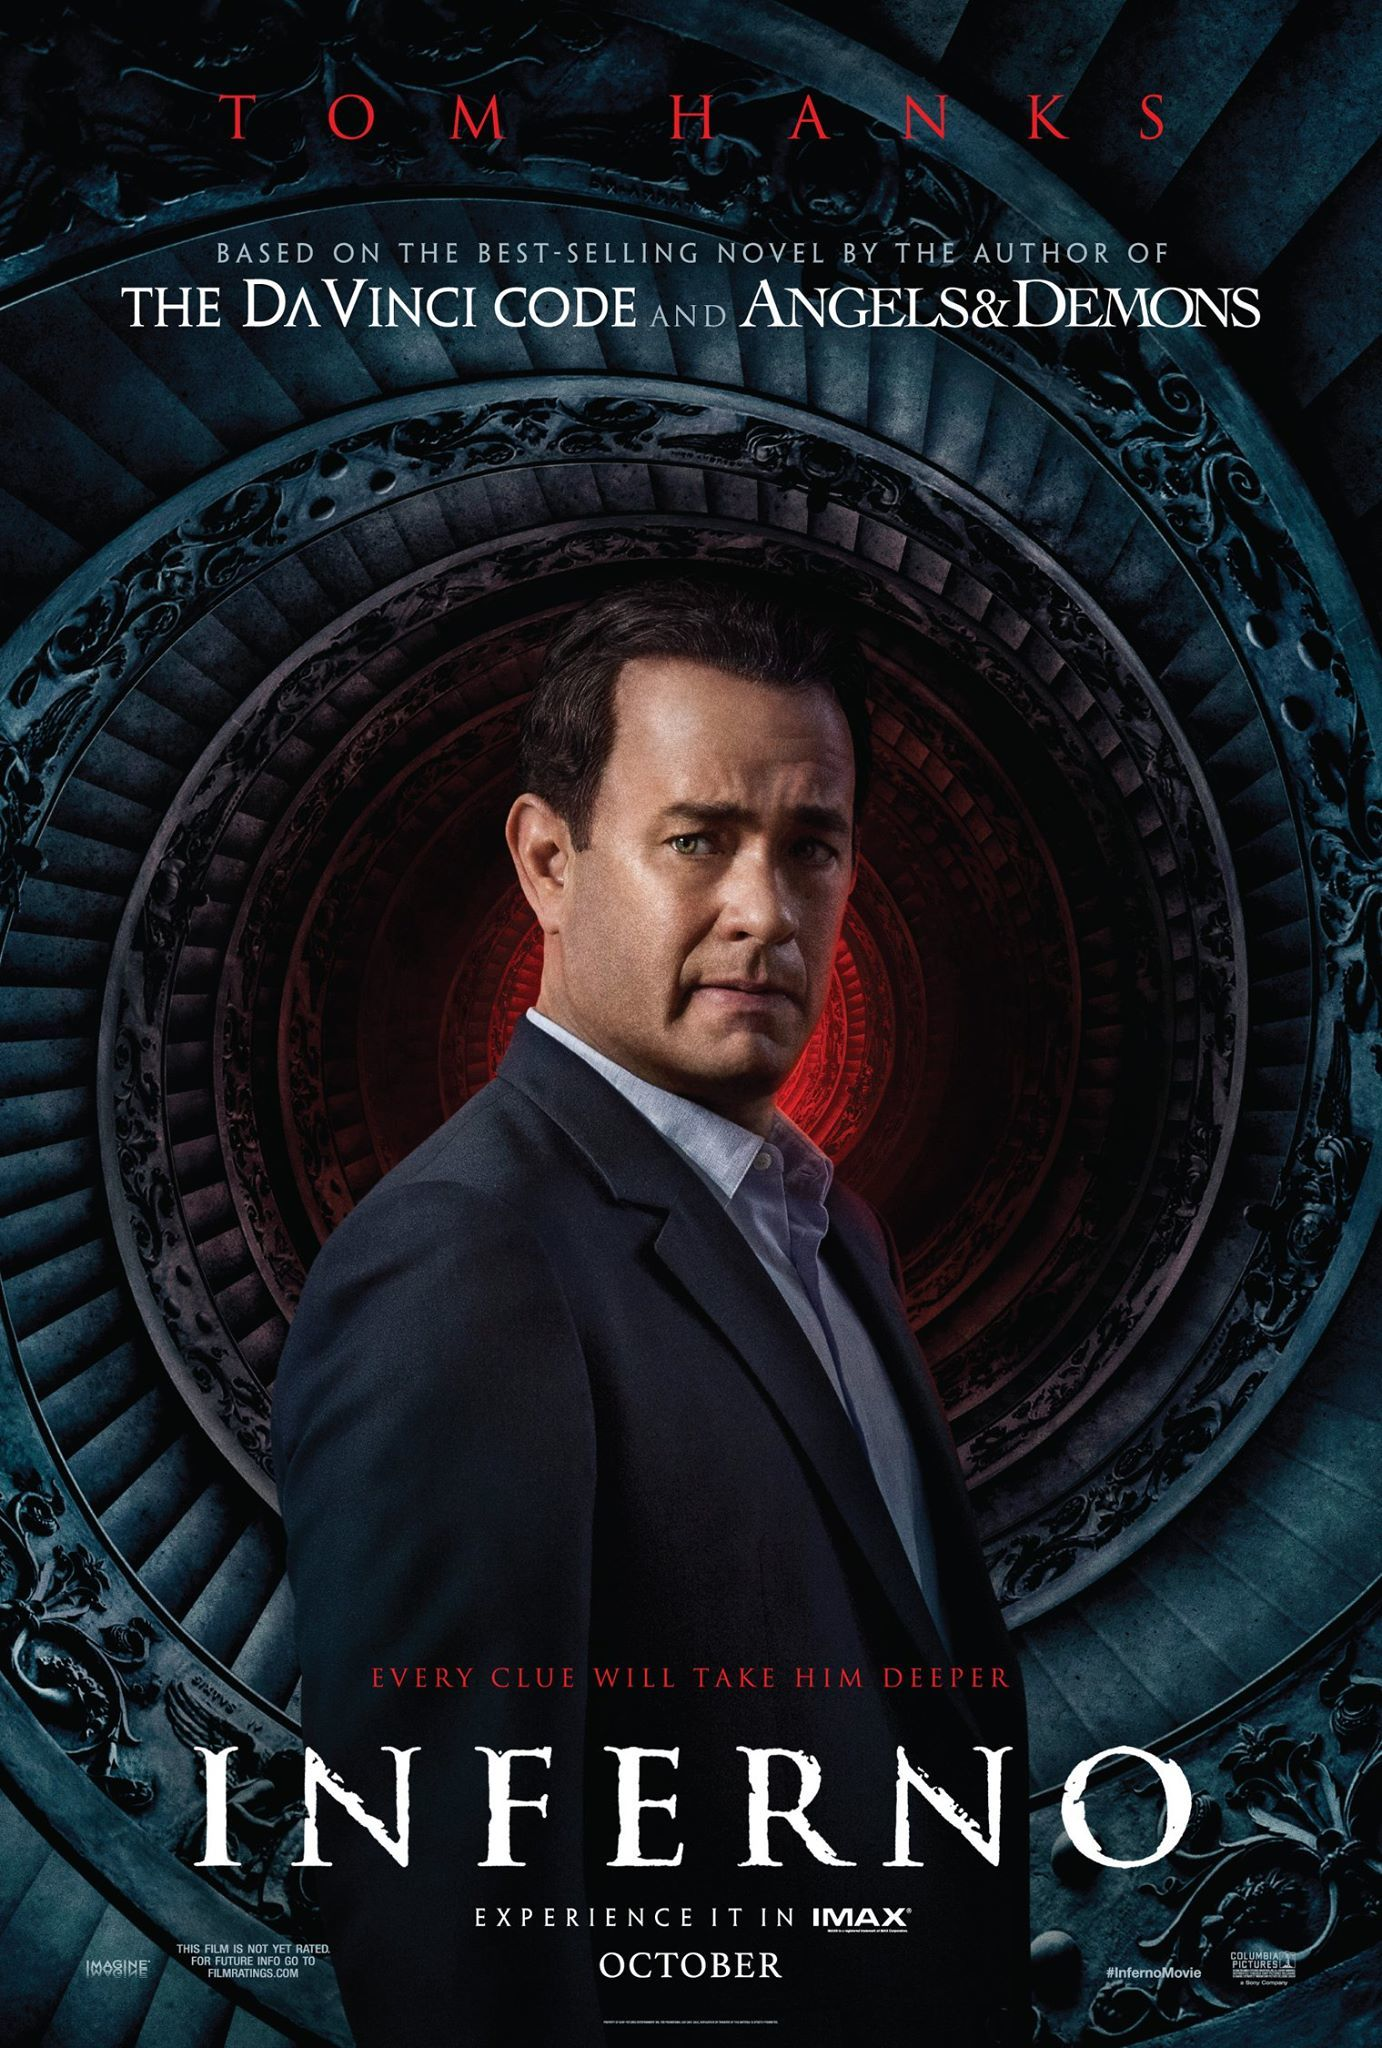 Tom Trailer Inferno Trailer Ups The Action For Tom Hanks Inverse